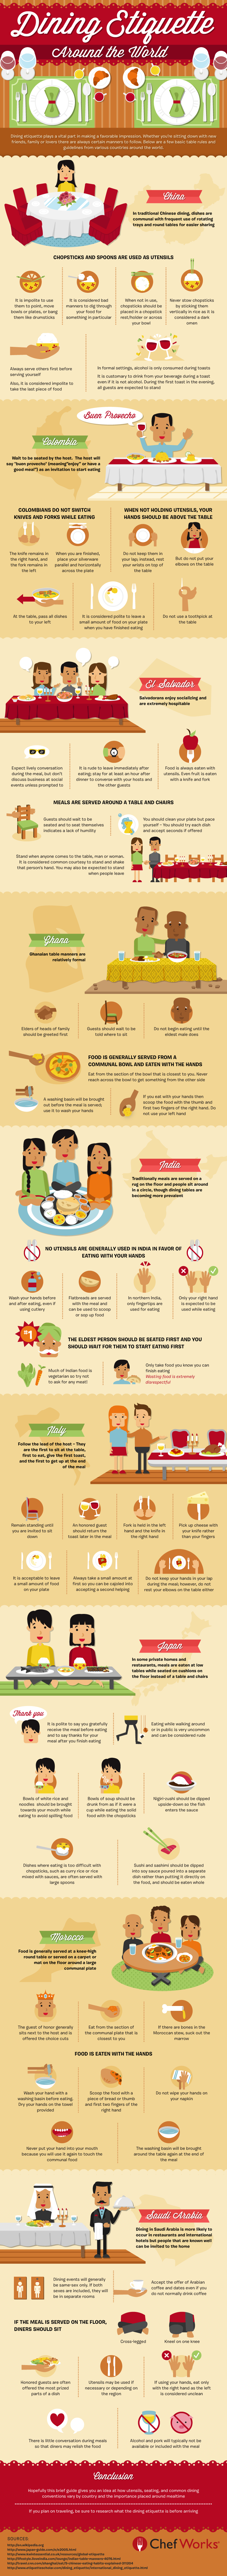 Global Dining Etiquette